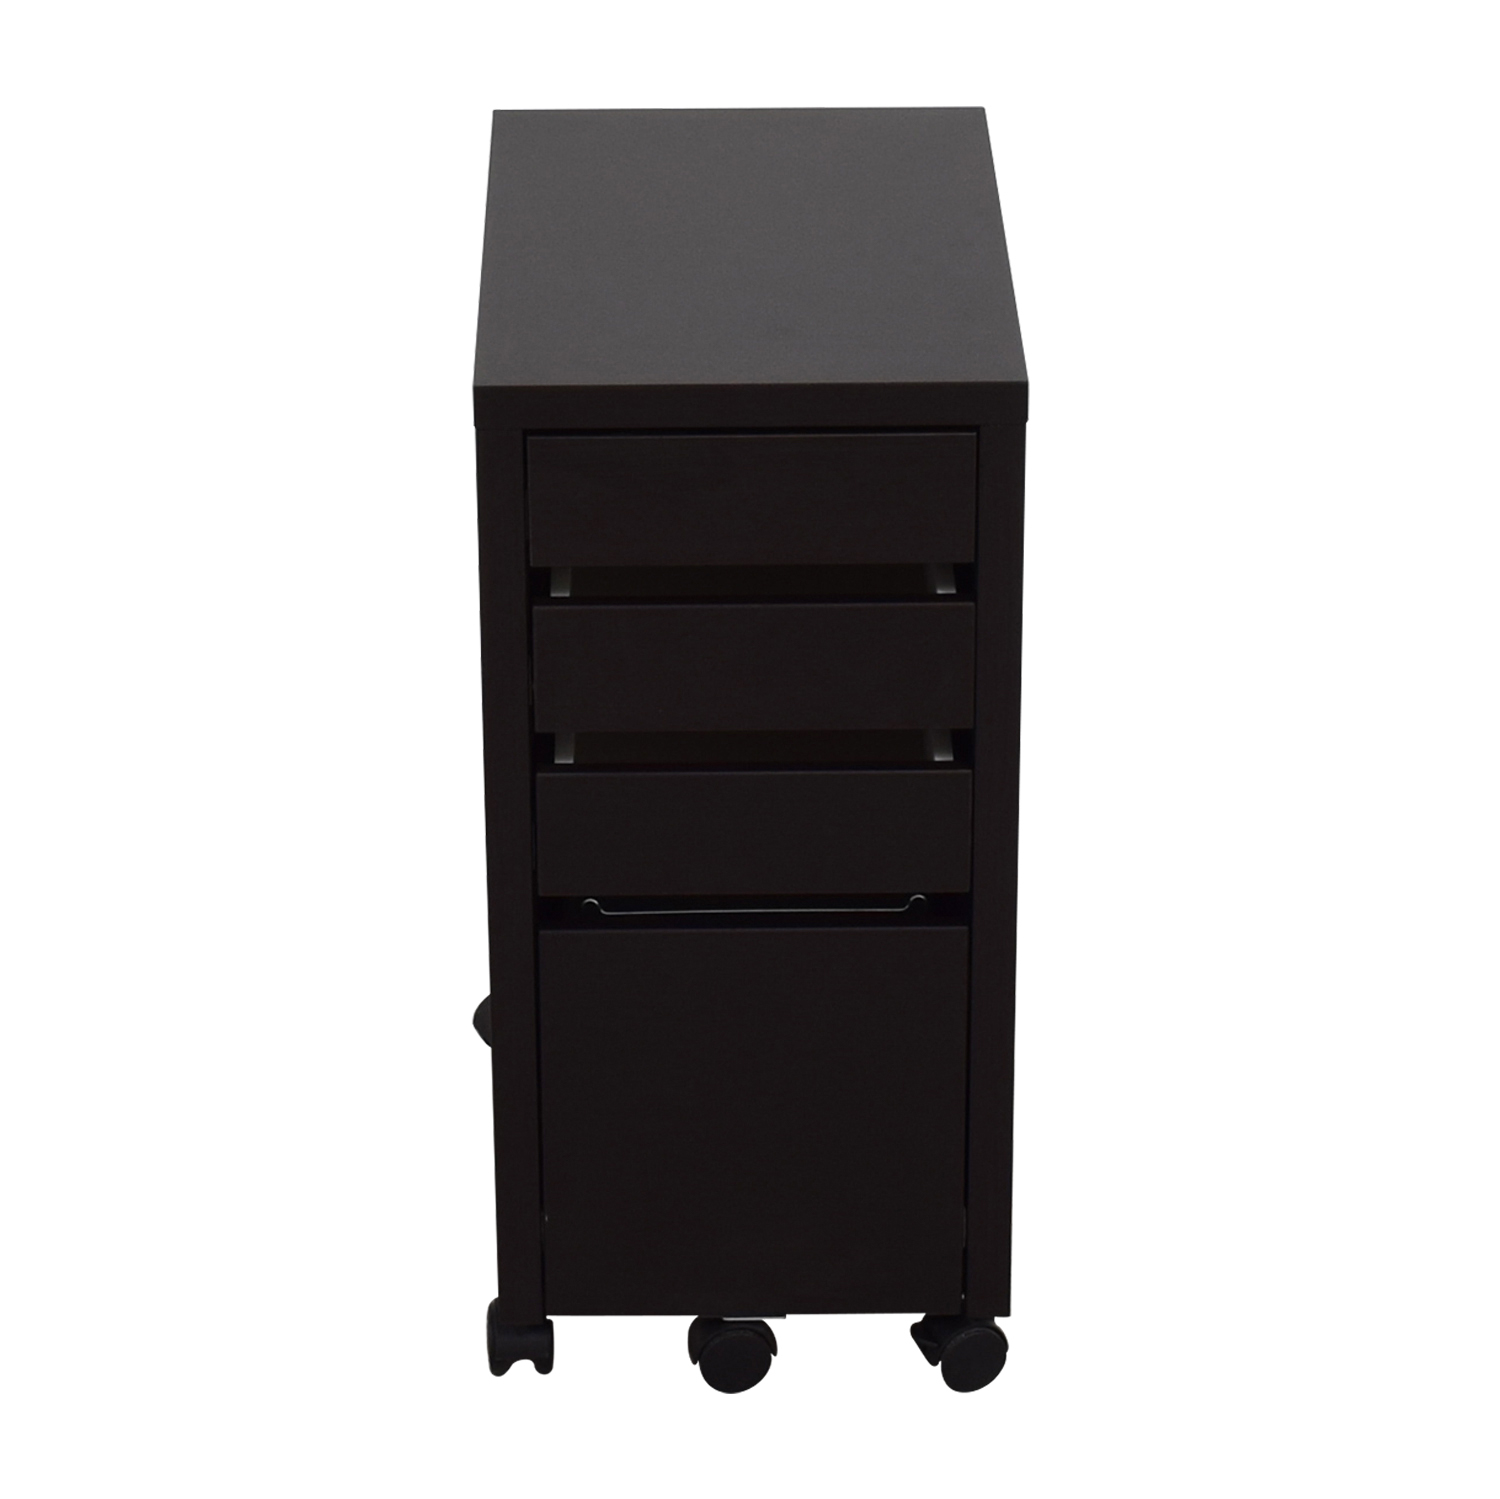 Staples Staples Black File Cabinet dimensions